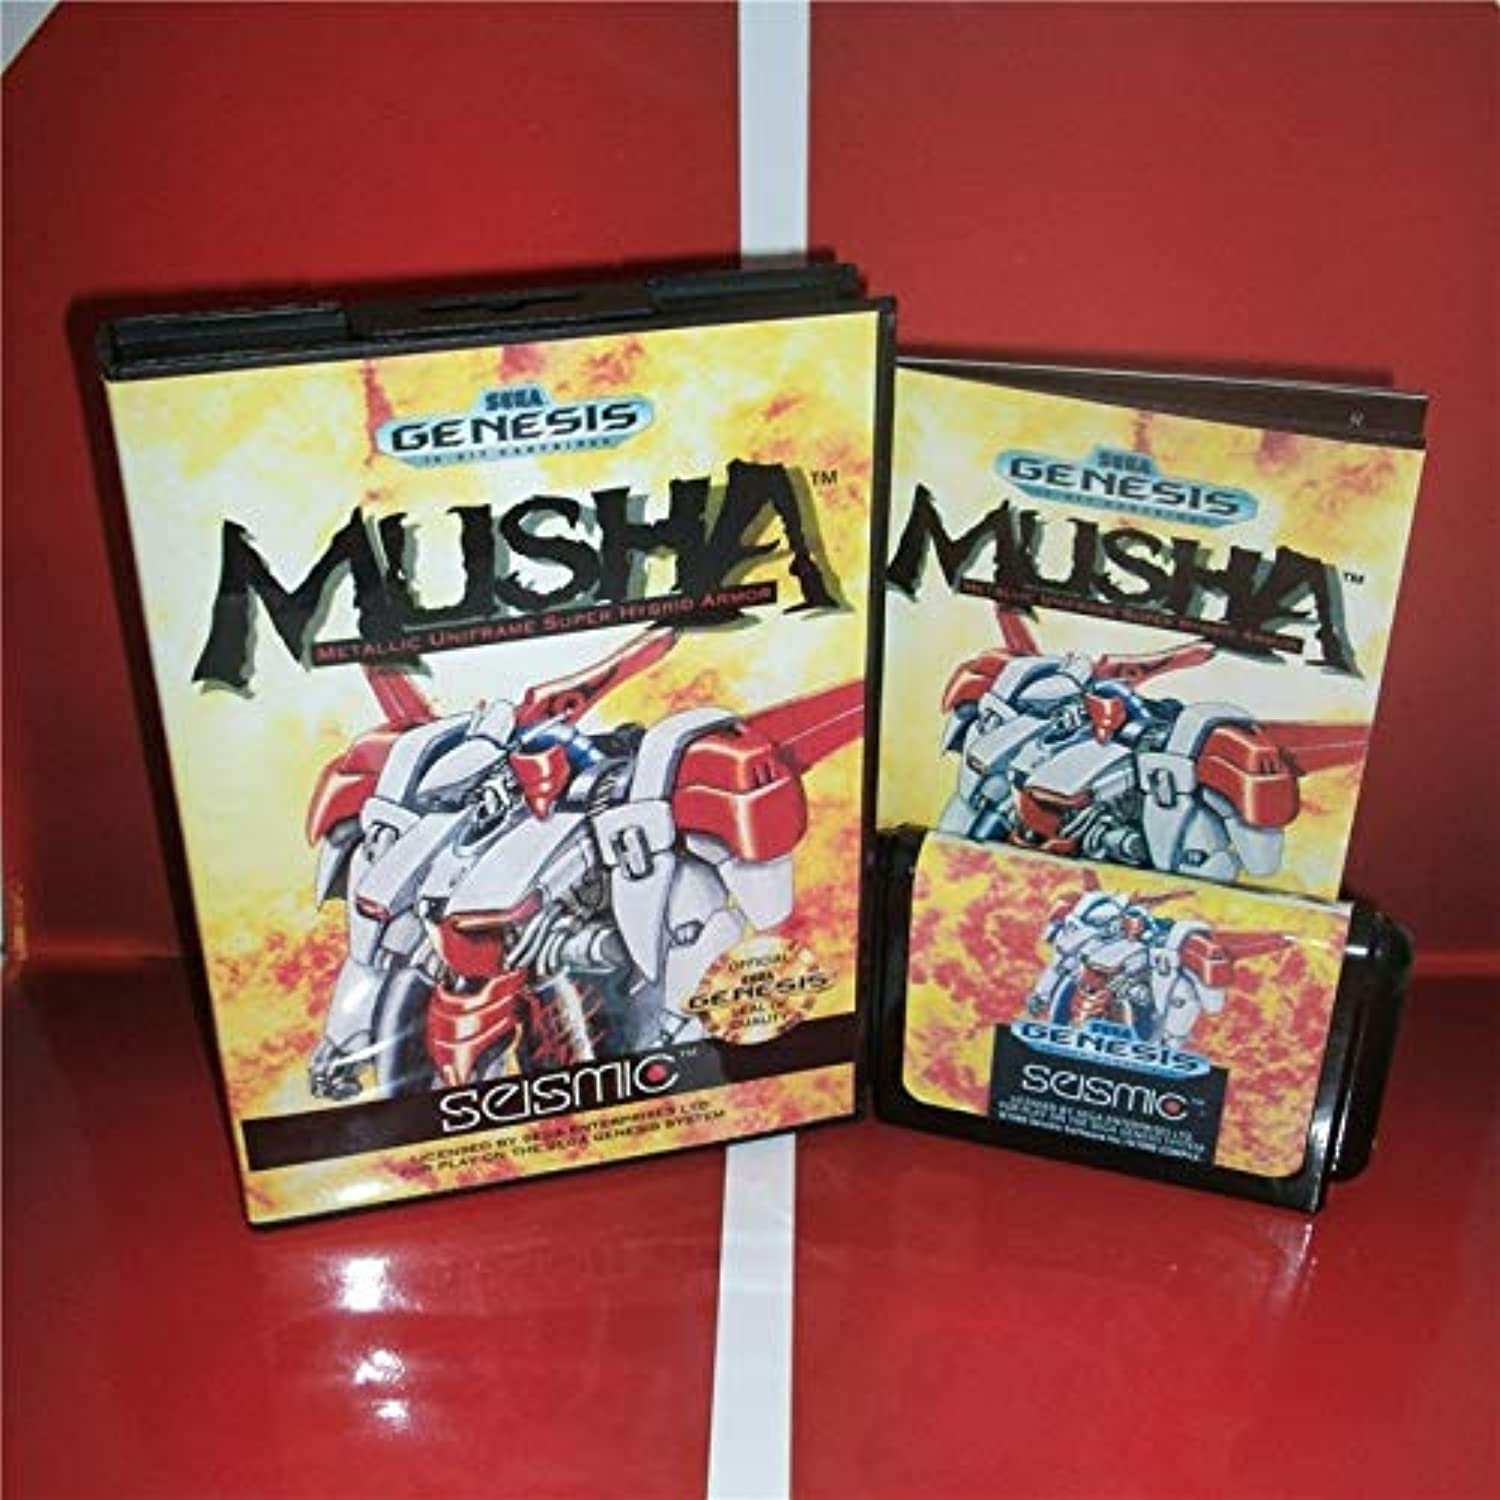 ValueSmartToys  MD Games Card  Musha US Cover with Box and Manual for Sega Megadrive Genesis Video Game Console 16 bit MD Card